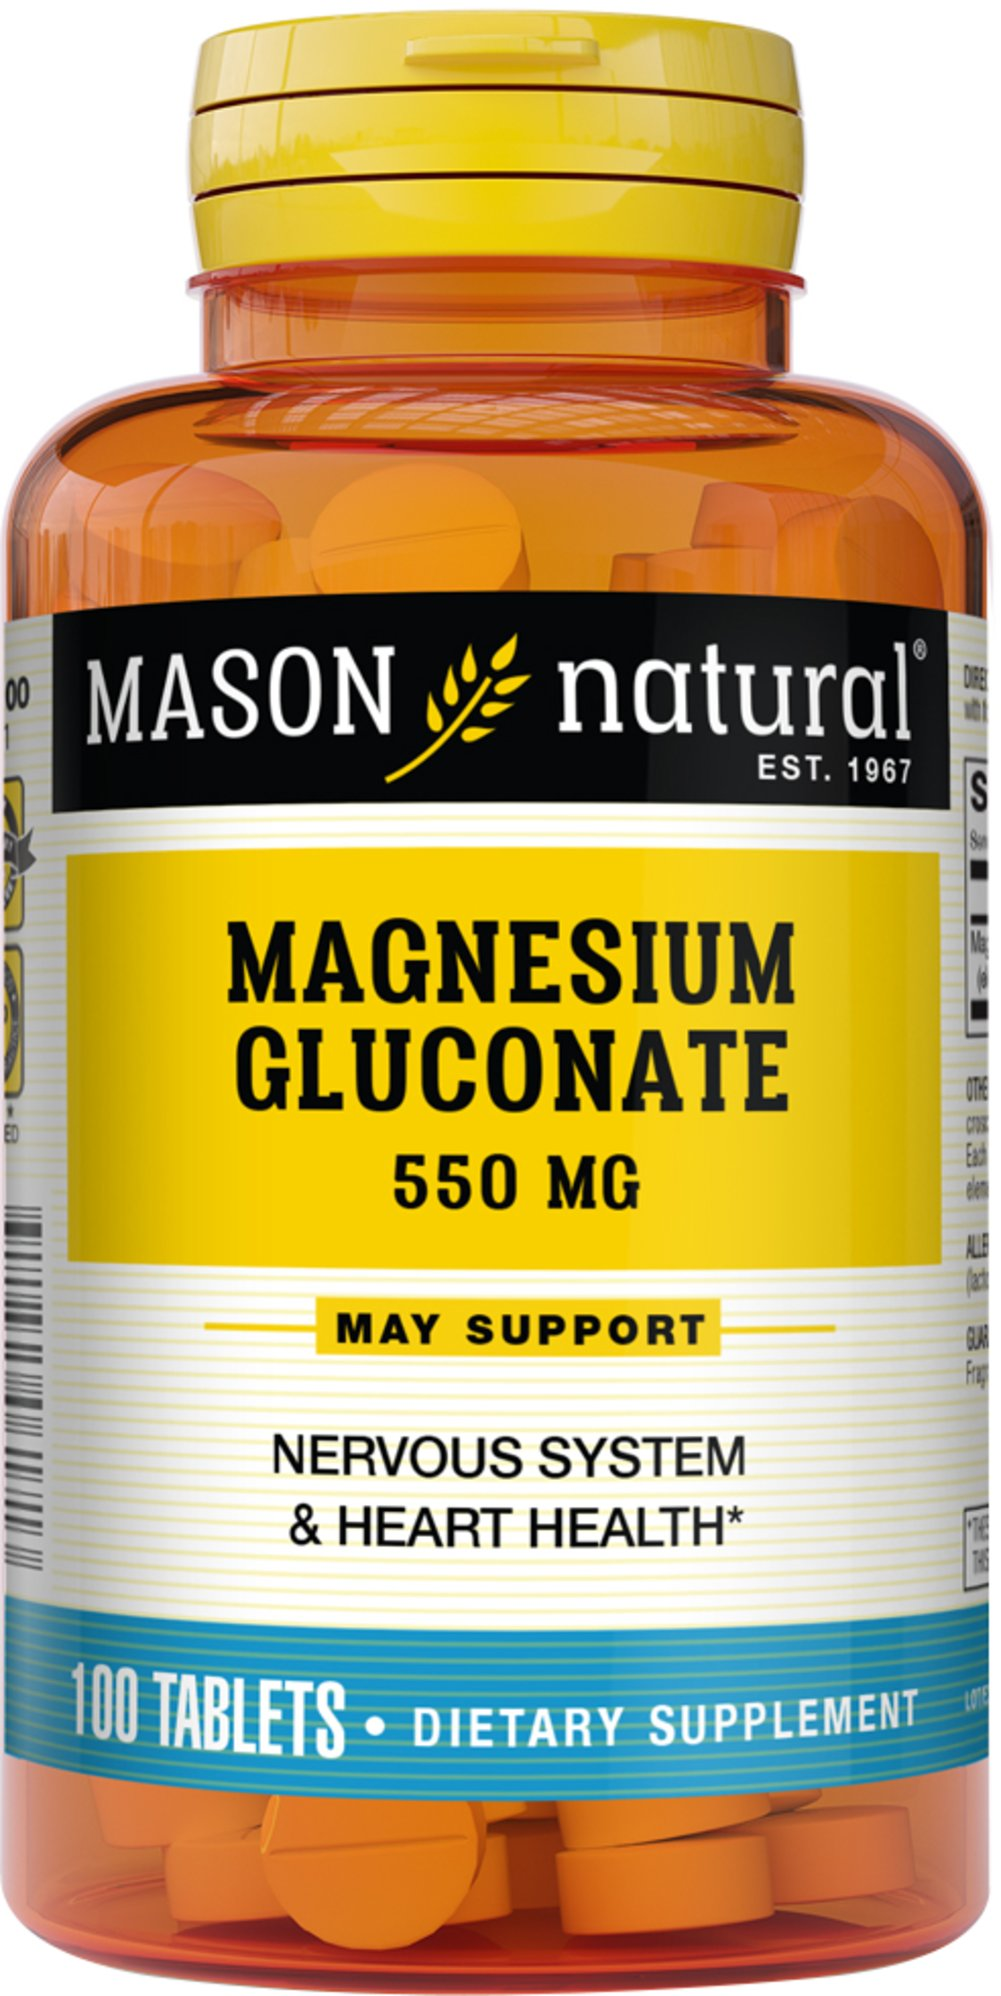 Magnesium Gluconate 550mg  100 Tablets 550 mg $4.82